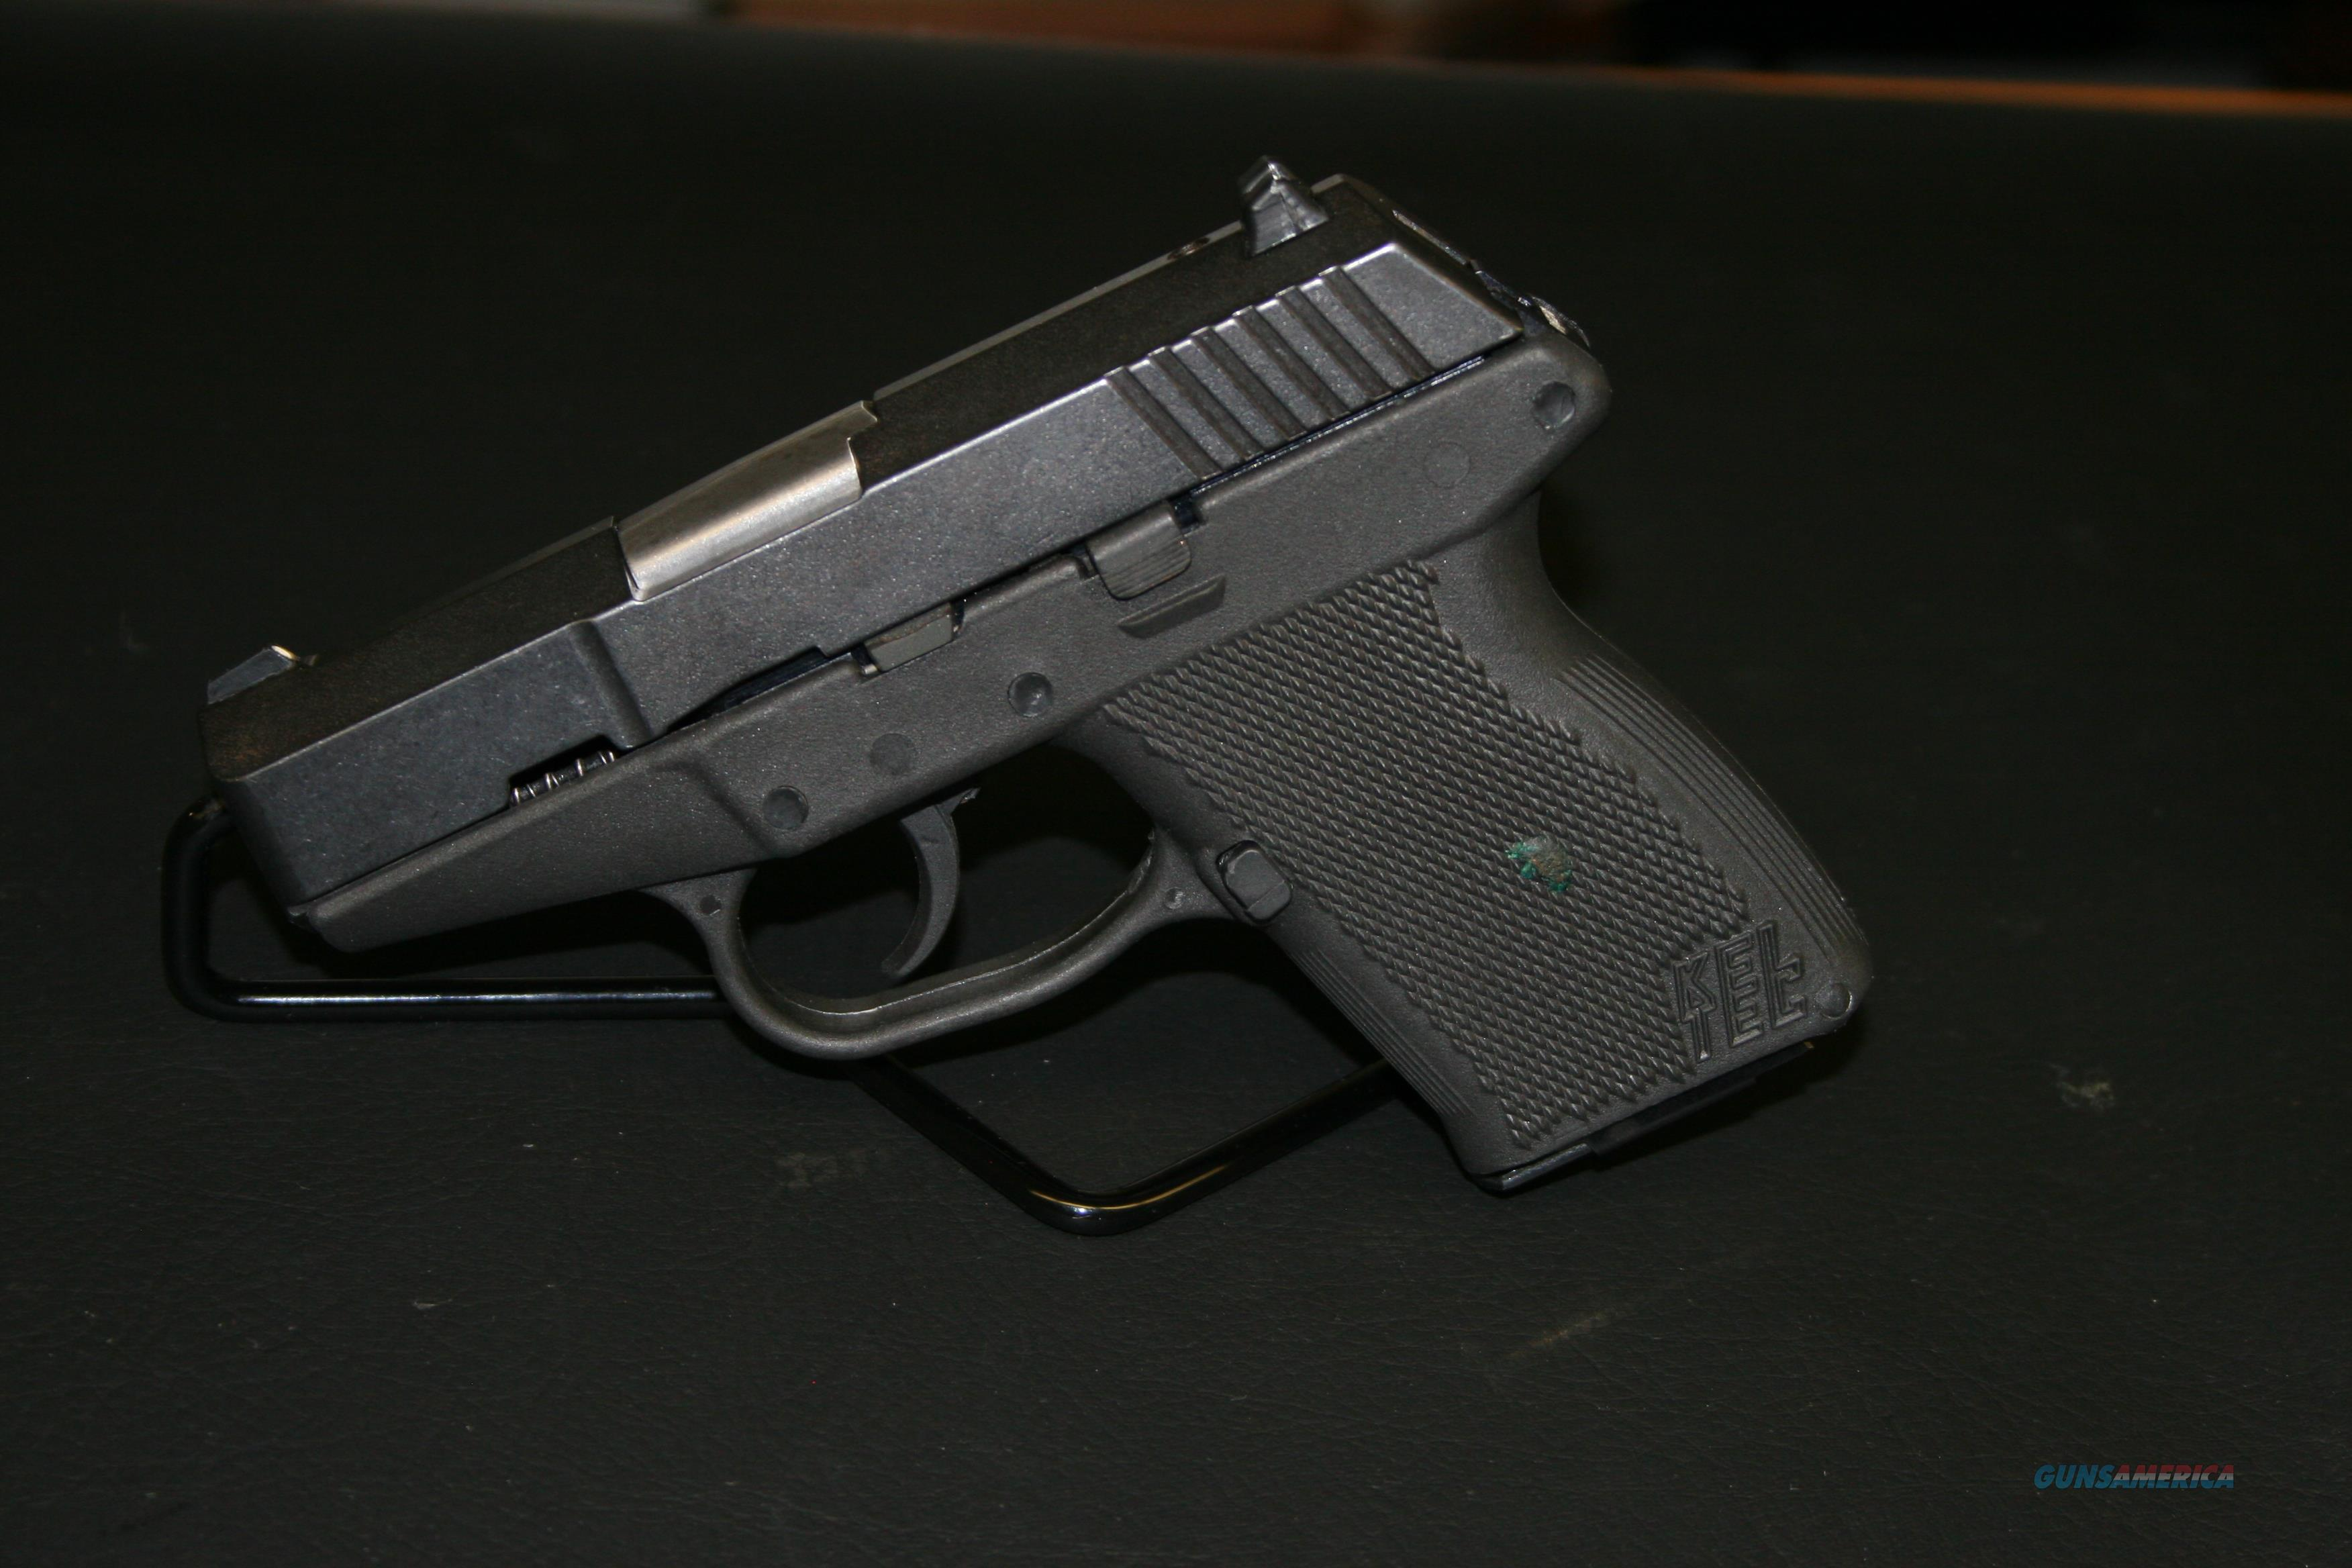 Kel-Tec P-11 P-11 10+1 9mm 3.1in  Guns > Pistols > Kel-Tec Pistols > Pocket Pistol Type